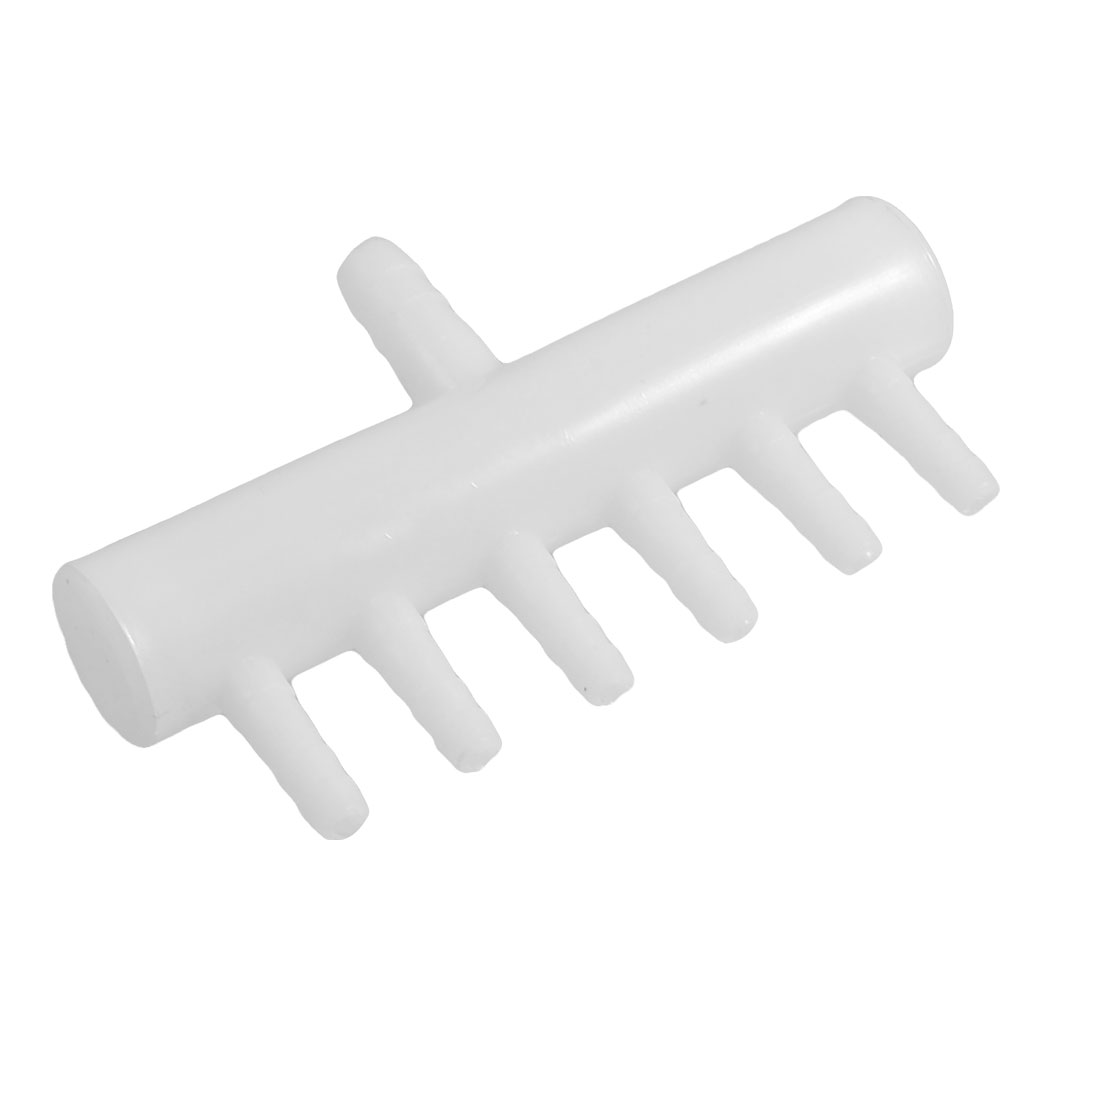 White Plastic 6 Way Air Flow Controller Aquarium O2 Splitter Valve